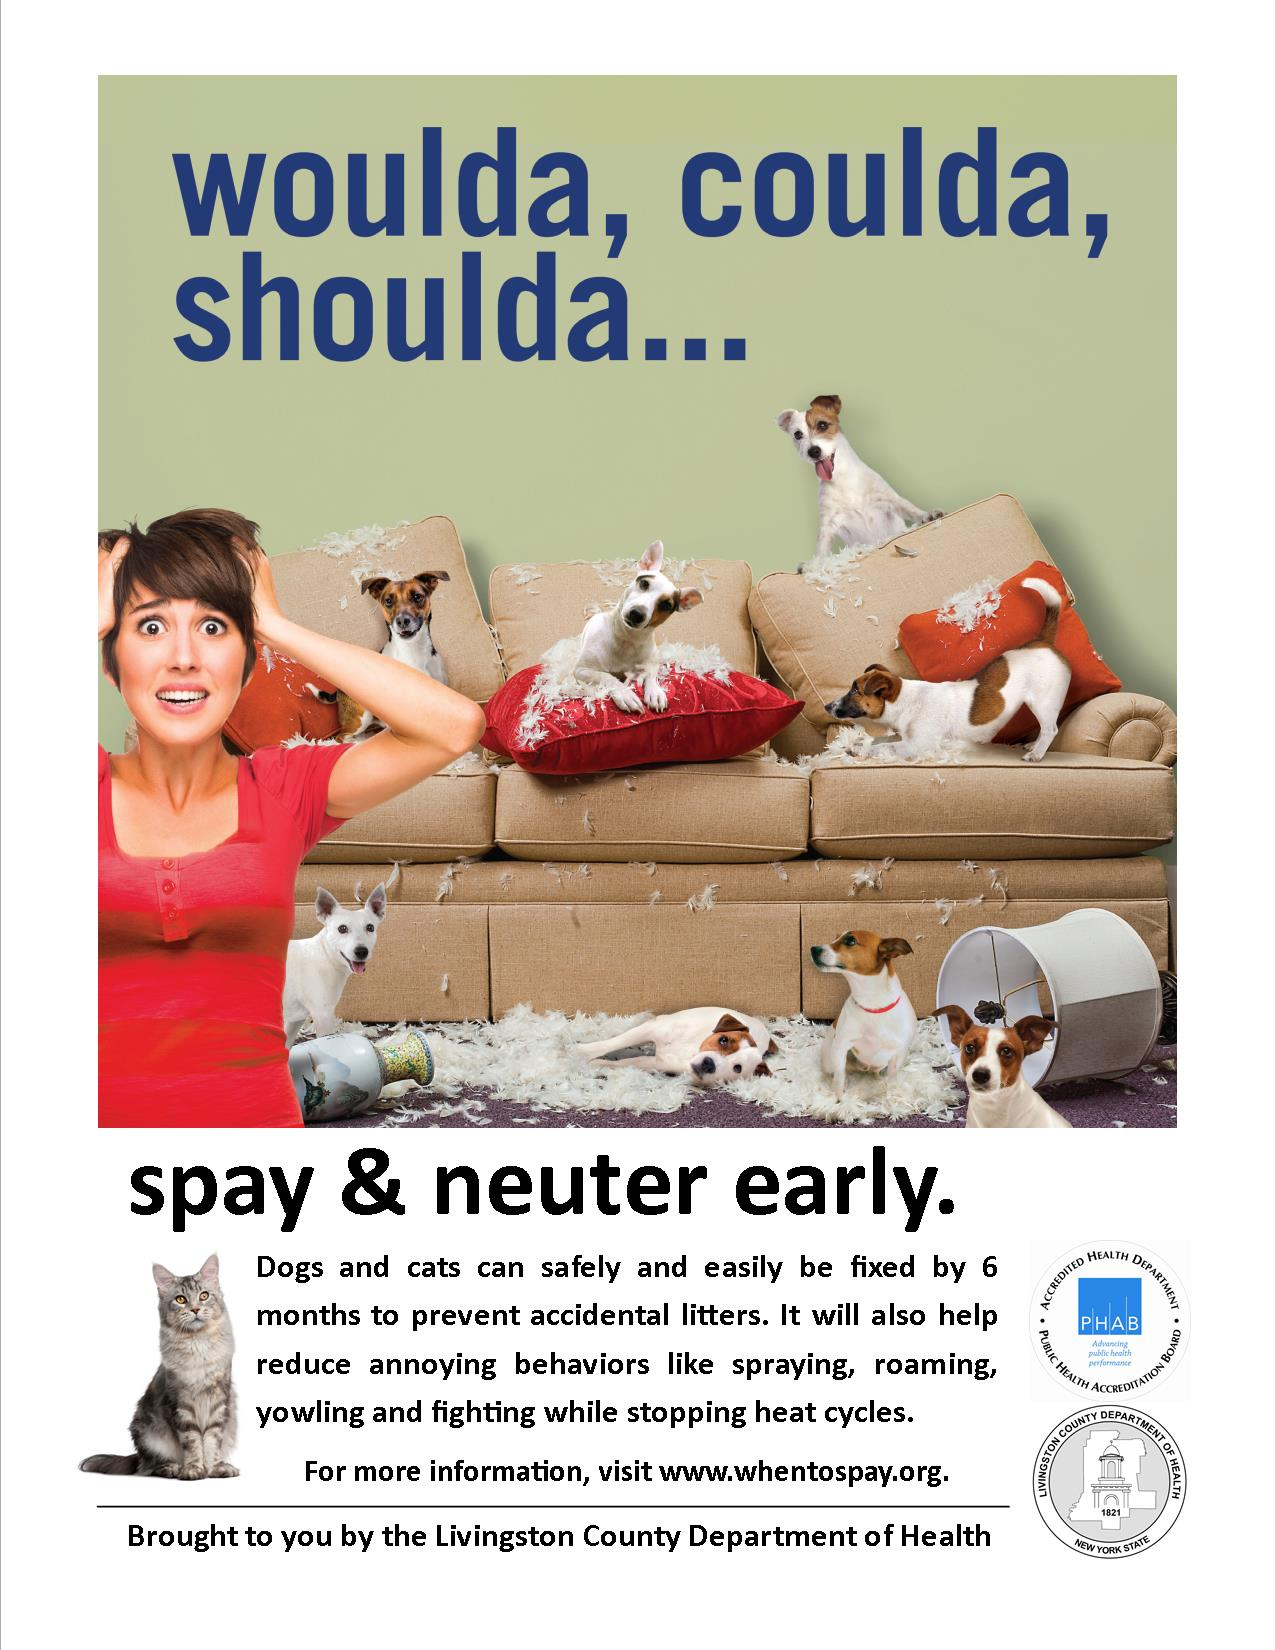 spay or neuter your pets campaign flyer